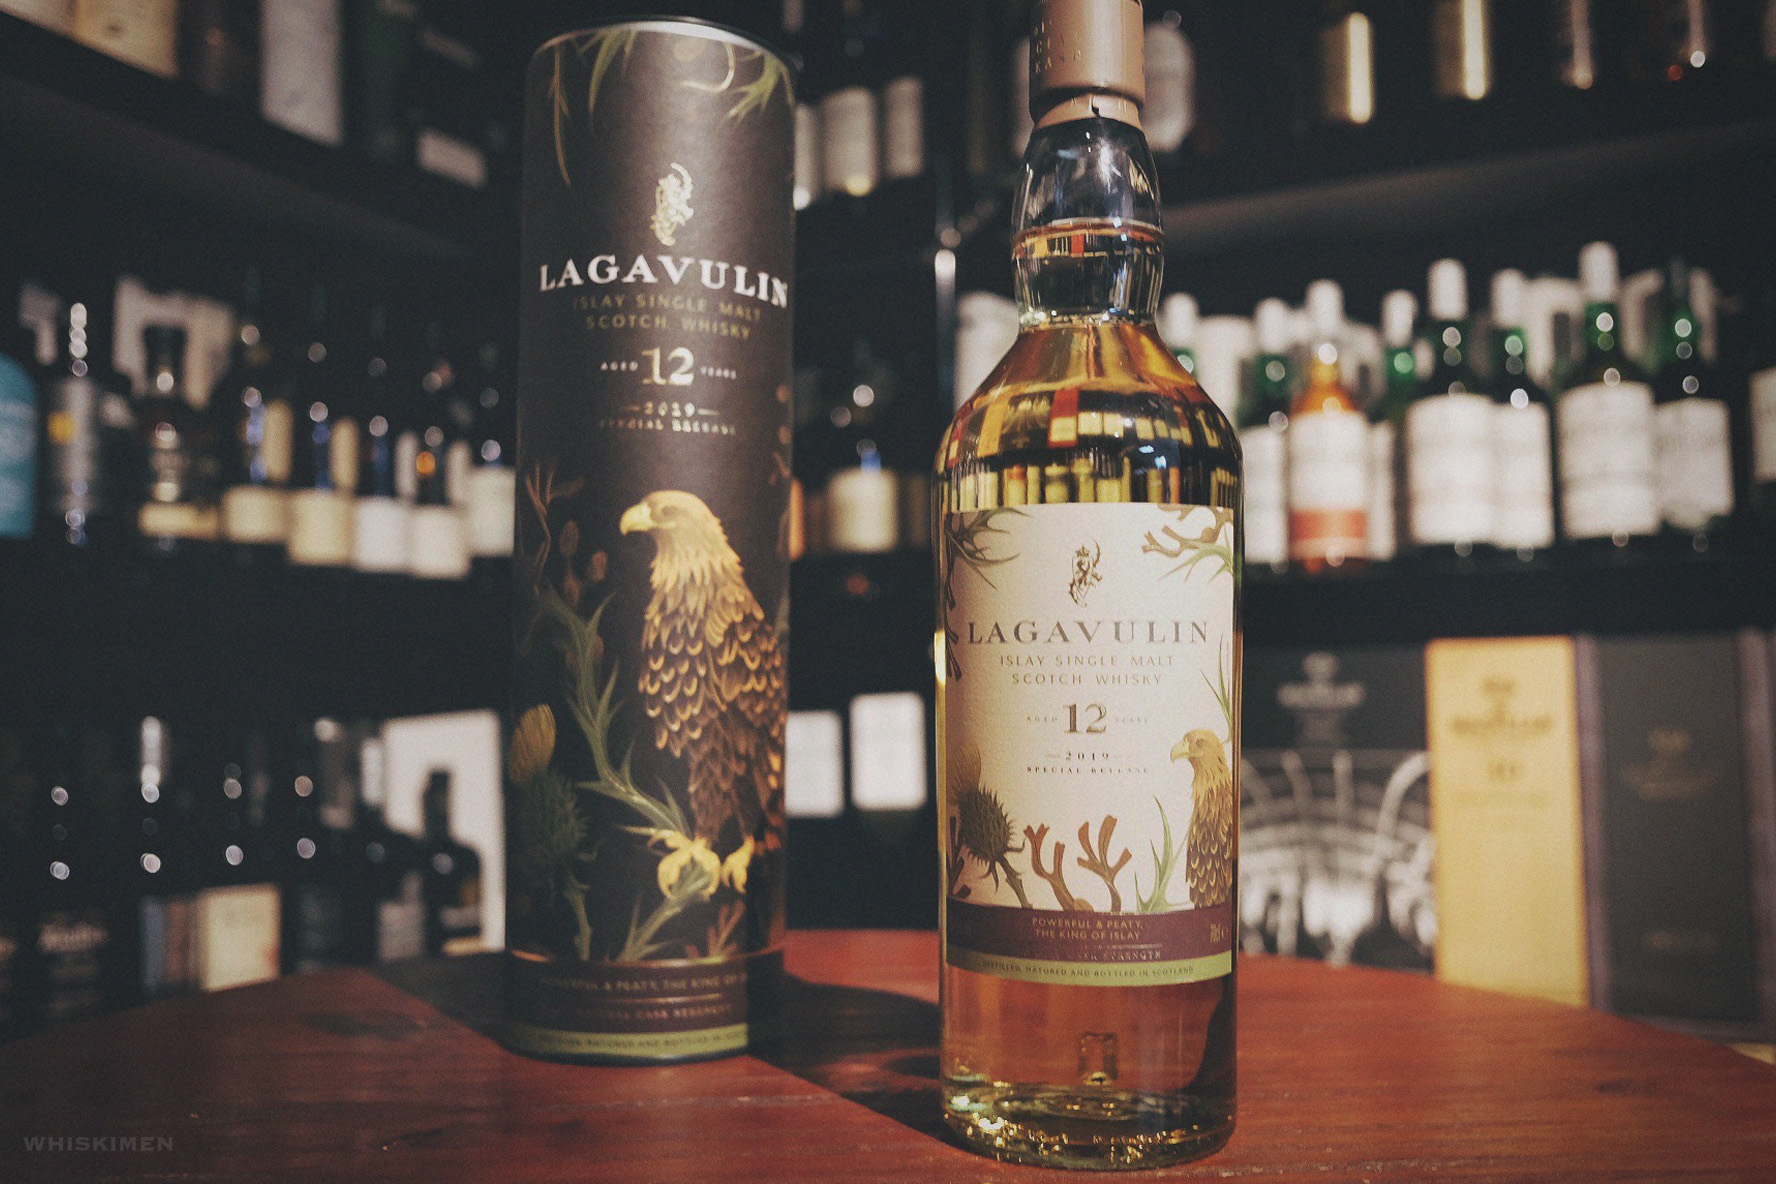 Lagavulin 12 Year Old Natural Cask Strength Single Malt Scotch Whisky (2019 Special Release)